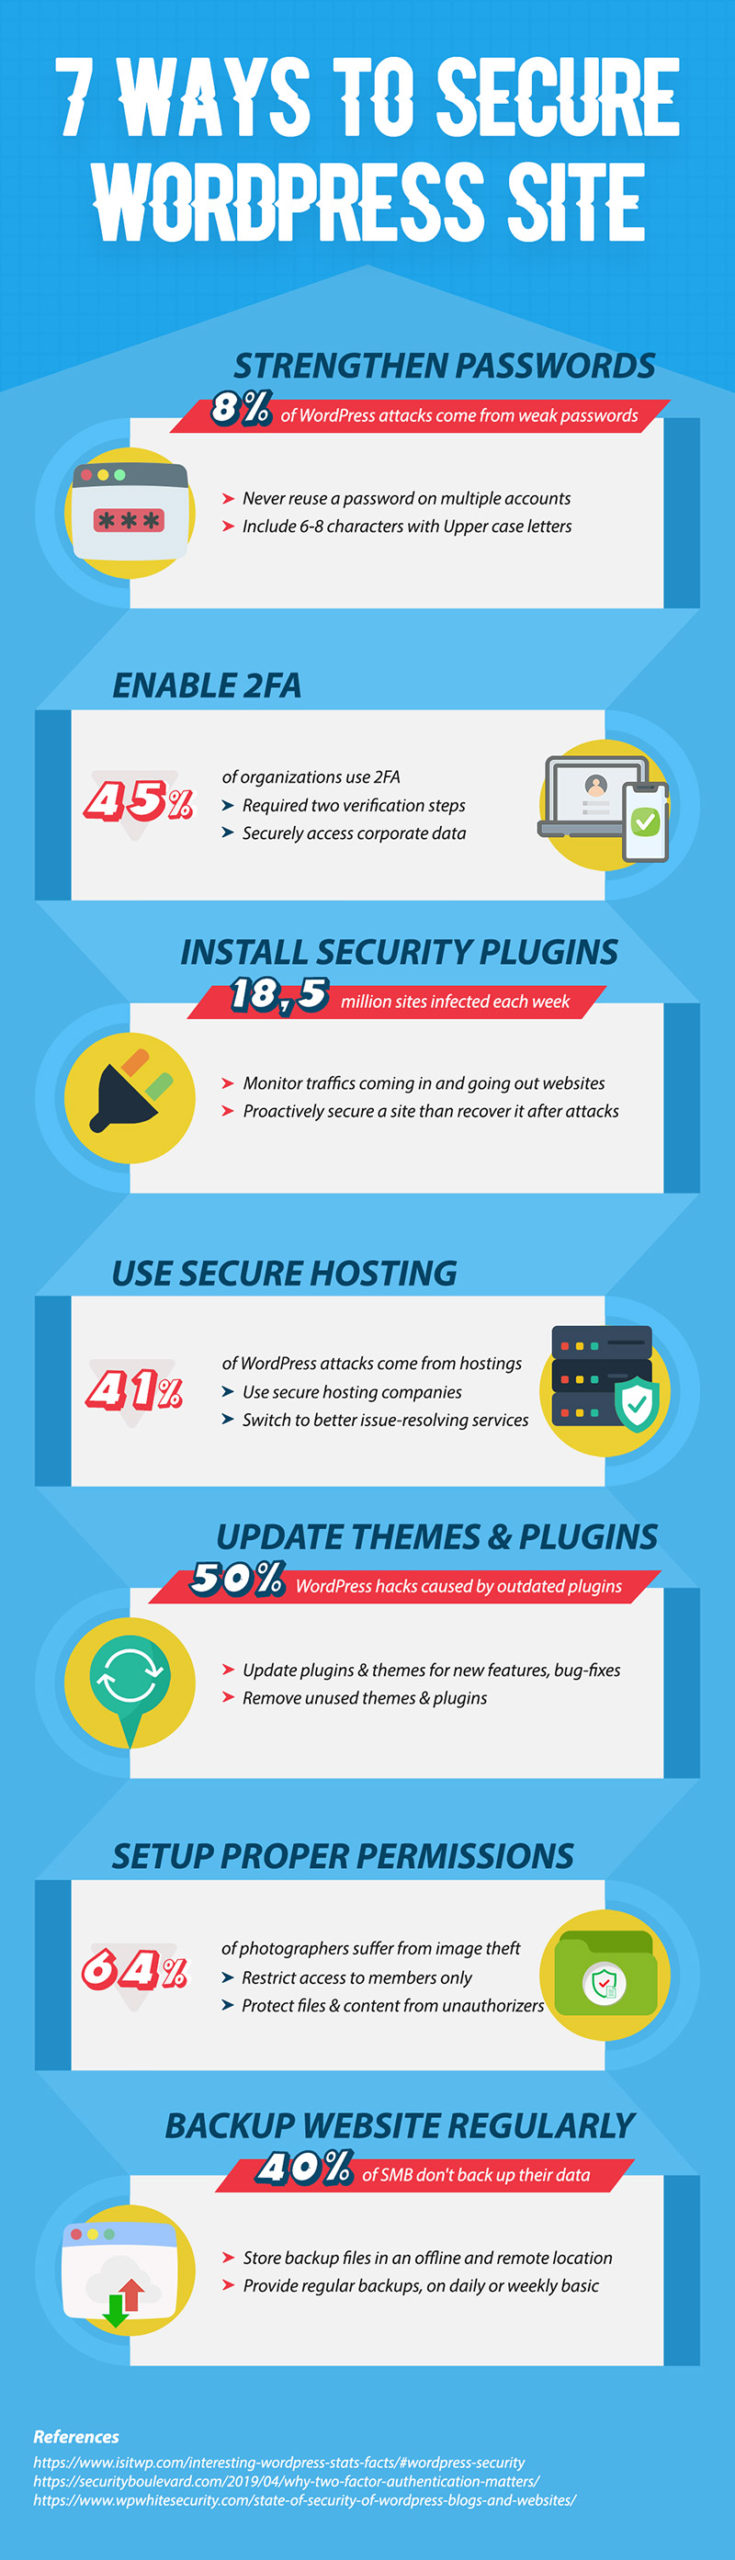 7 ways to secure your WordPress site